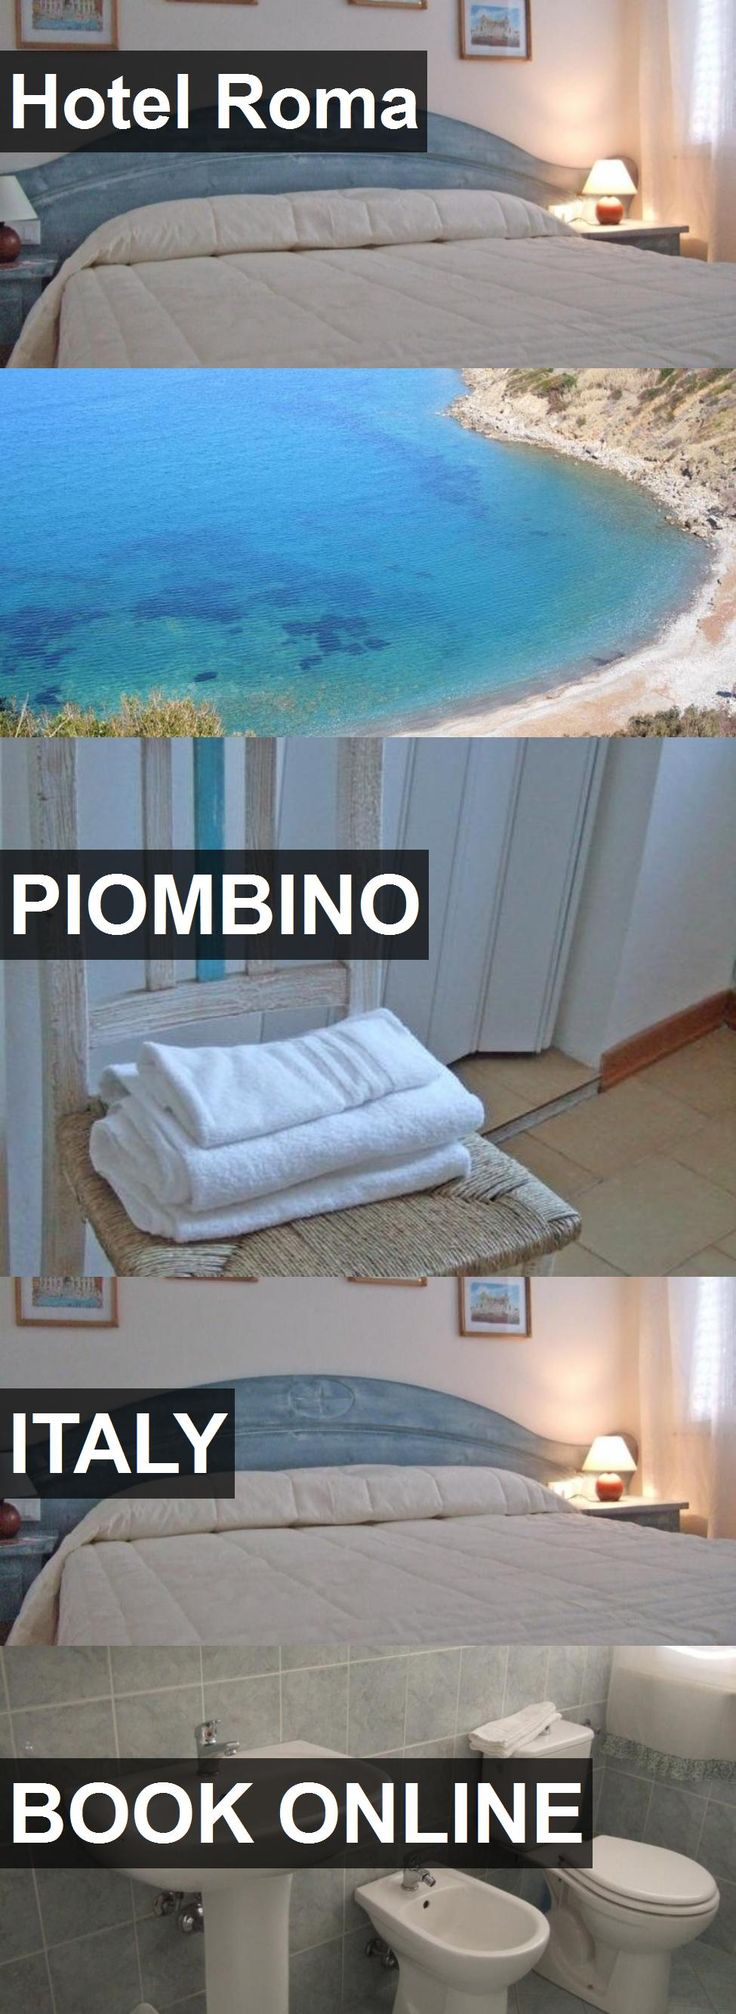 Hotel Roma in Piombino, Italy. For more information, photos, reviews and best prices please follow the link. #Italy #Piombino #travel #vacation #hotel